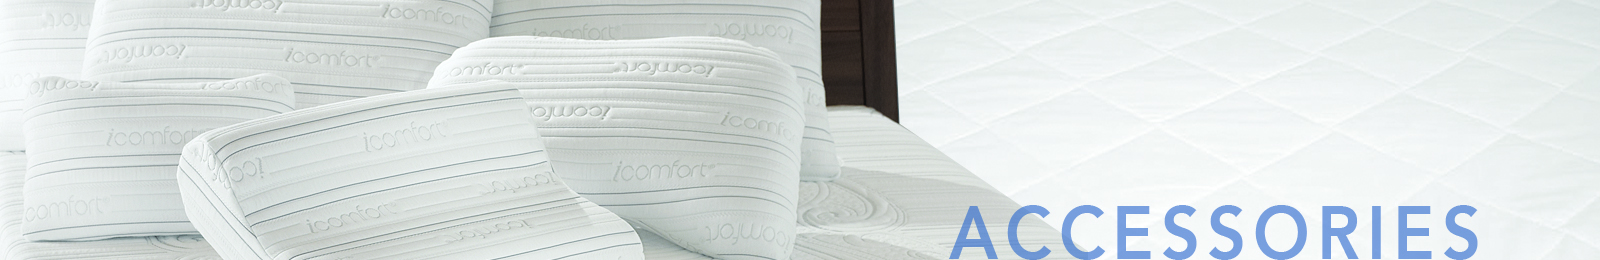 Mattress King Accessories Banner